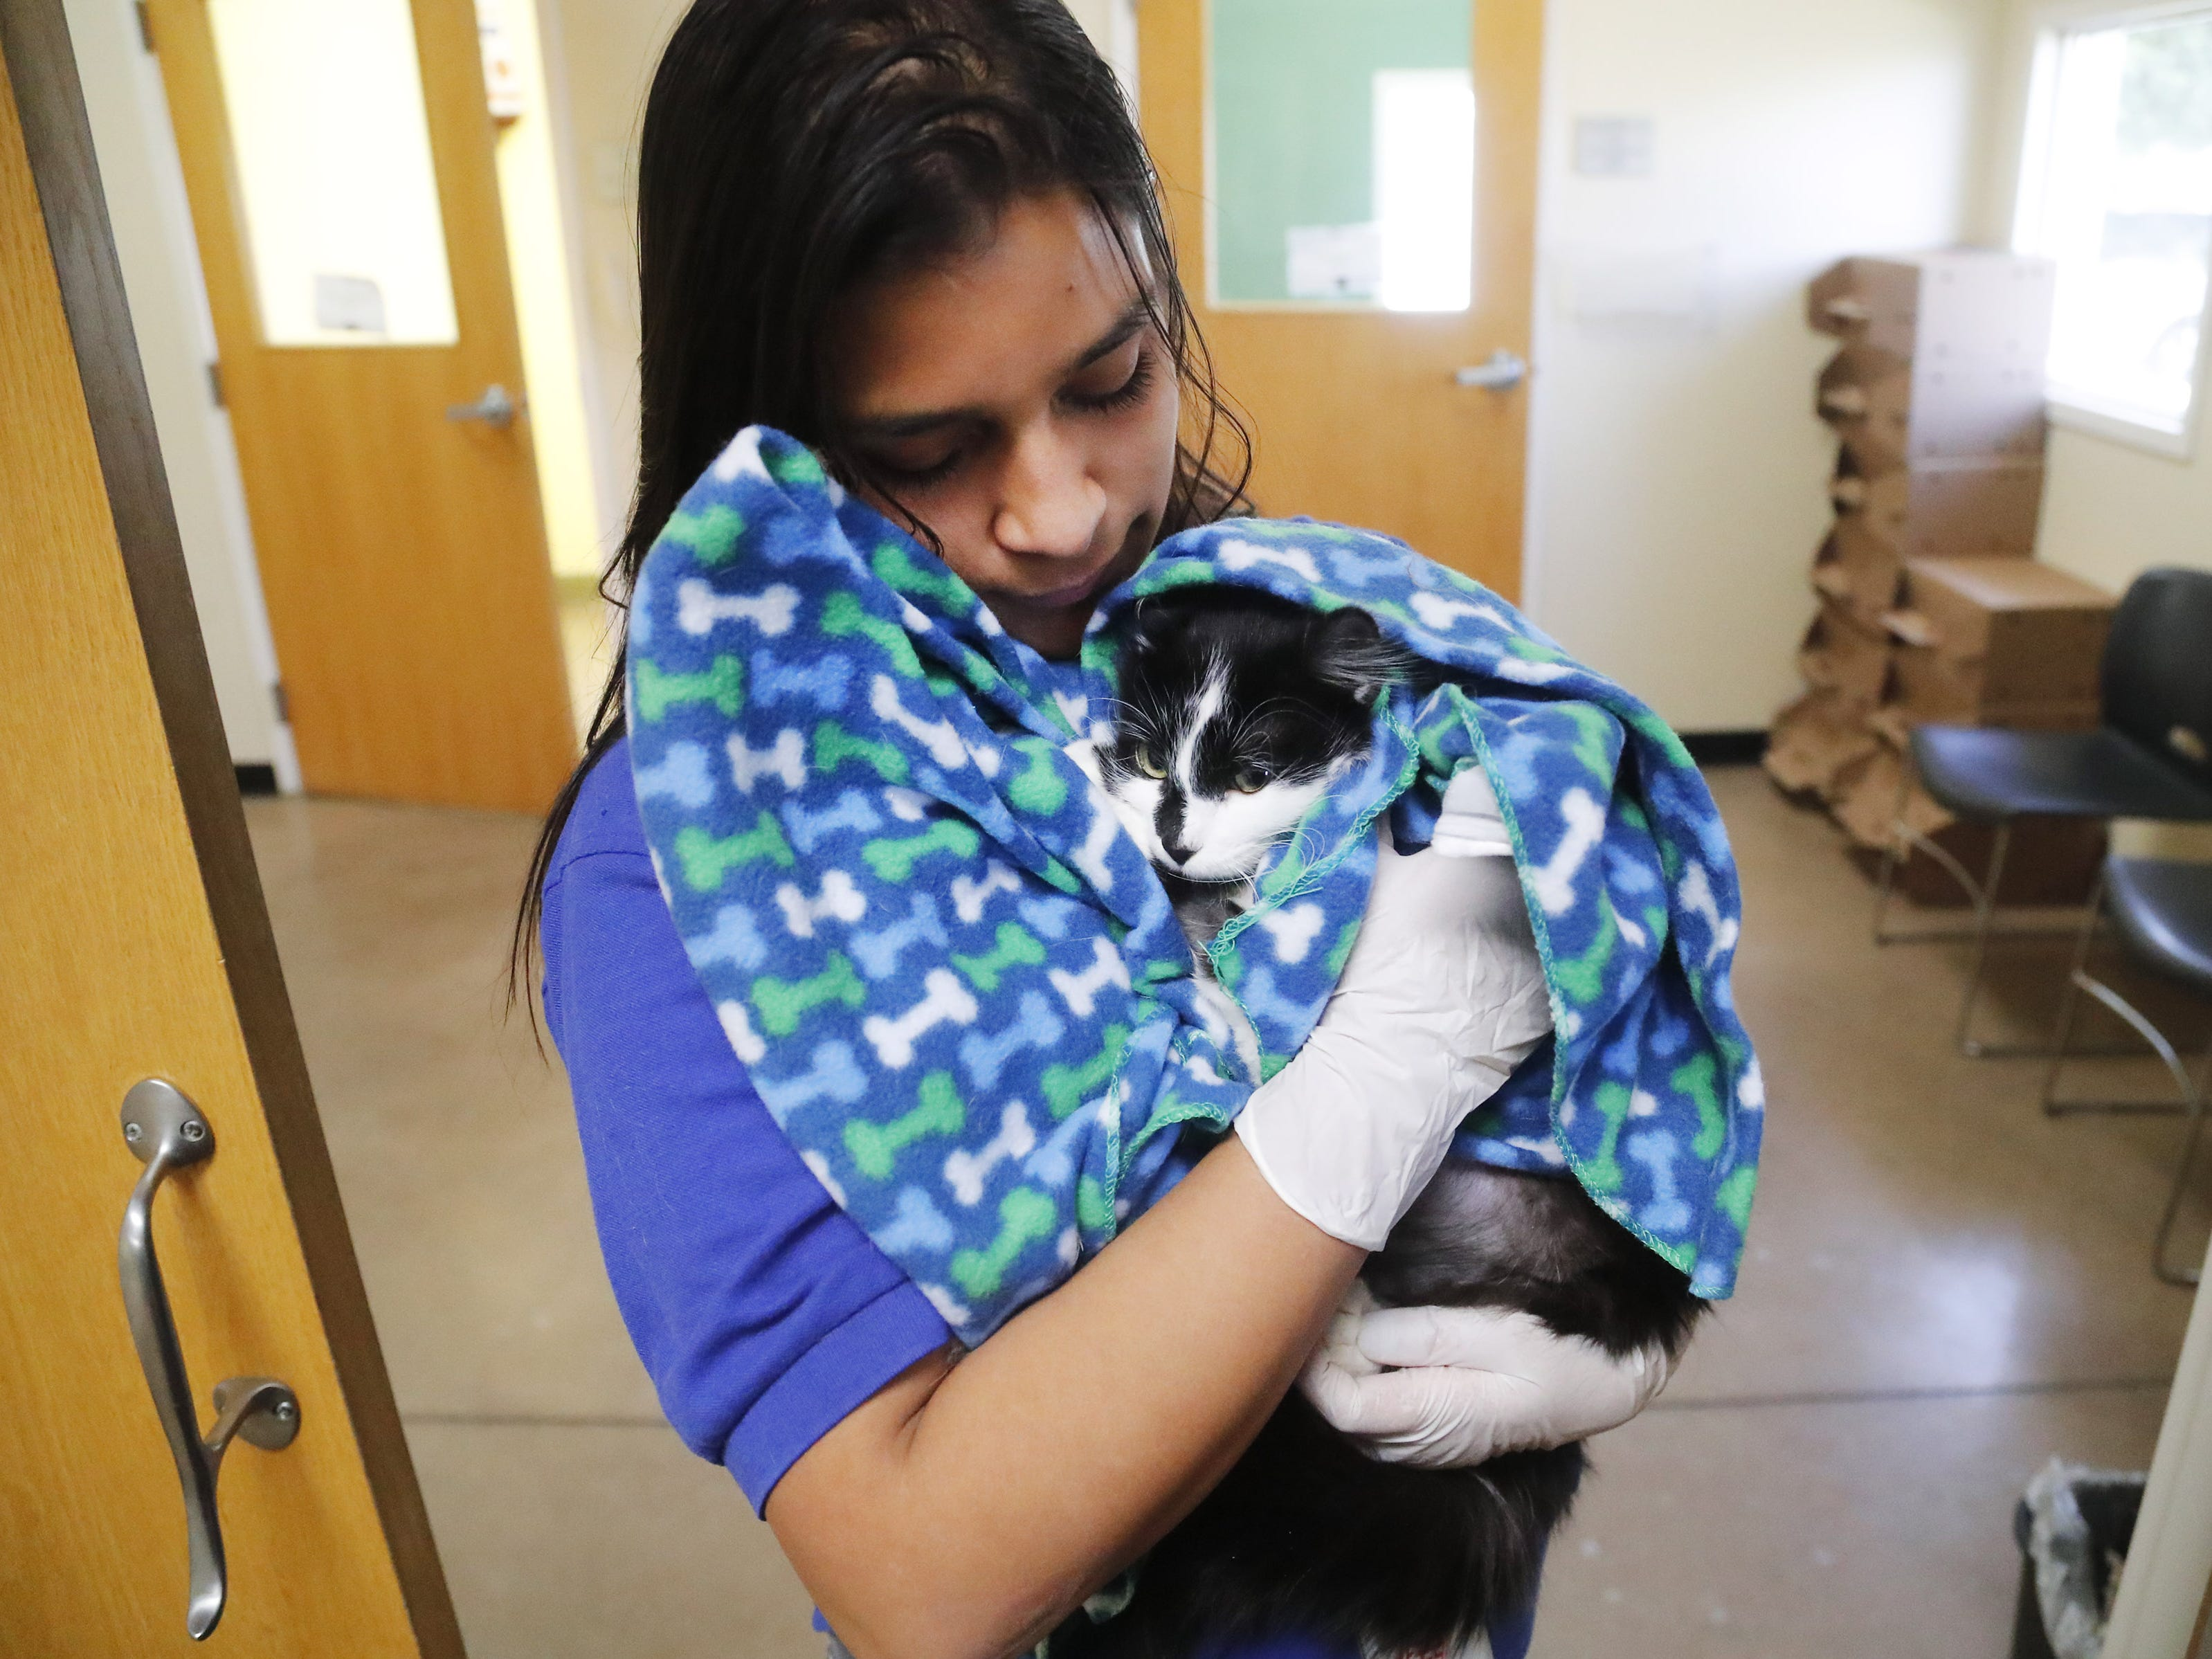 Jenny Jimenez, an adoption specialist, holds Minnie at the Arizona Humane Society in Phoenix on April 1, 2019. More than 8,000 dogs and cats have been surrendered in Maricopa County since the start of the year. Minnie was rescued from a hoarding situation.